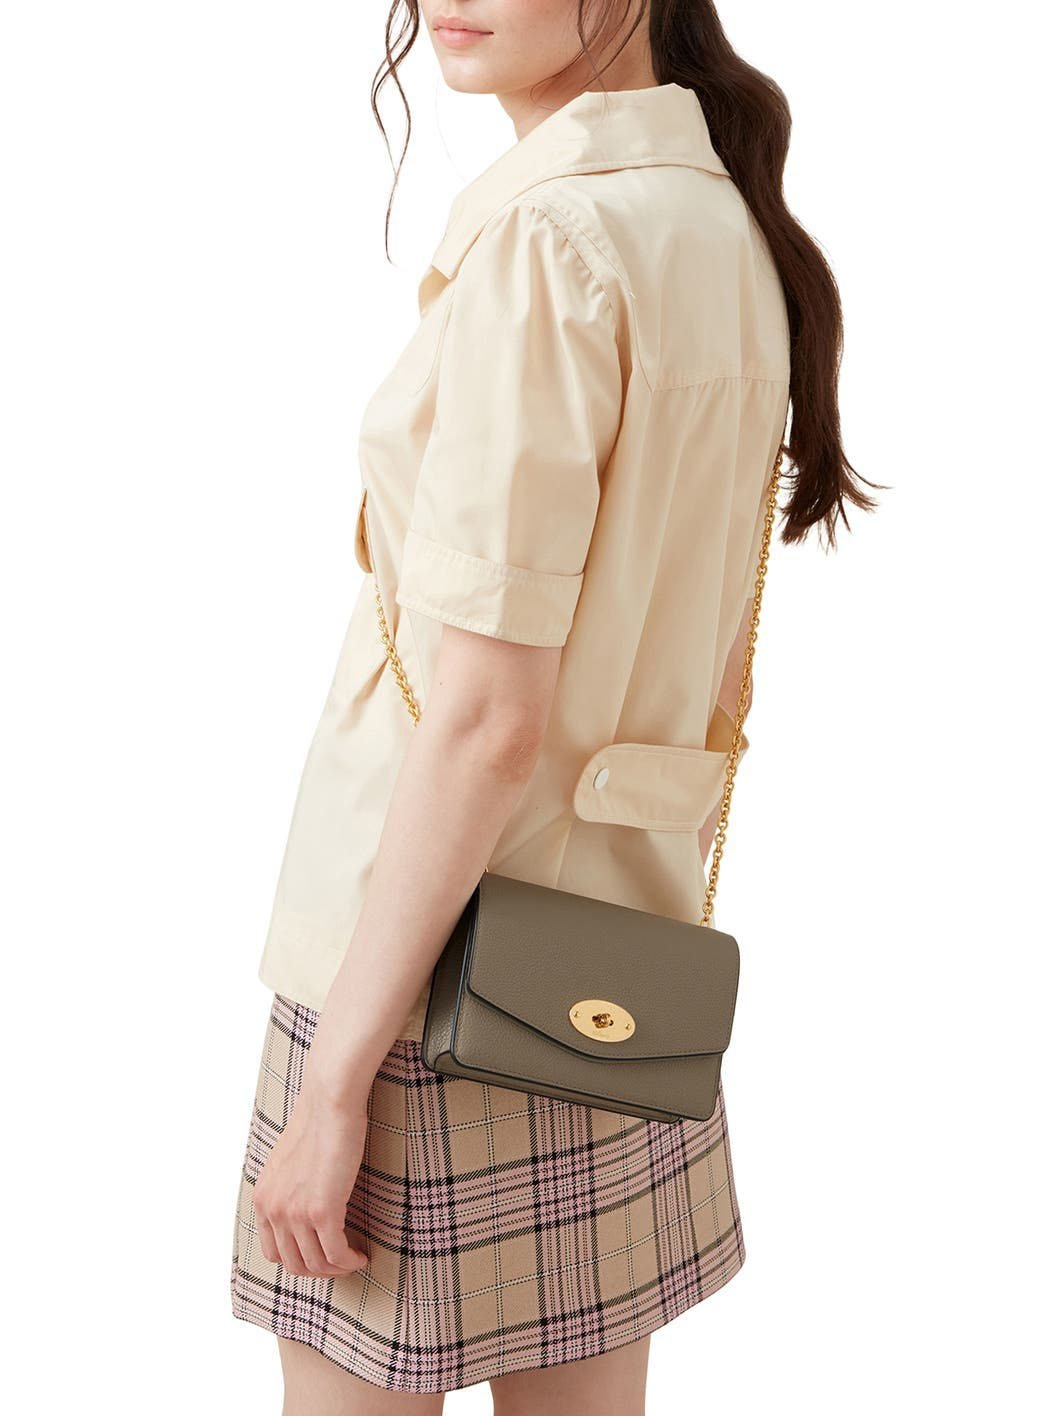 Carry it as a crossbody bag during the day and as a clutch at night with its removable chain strap